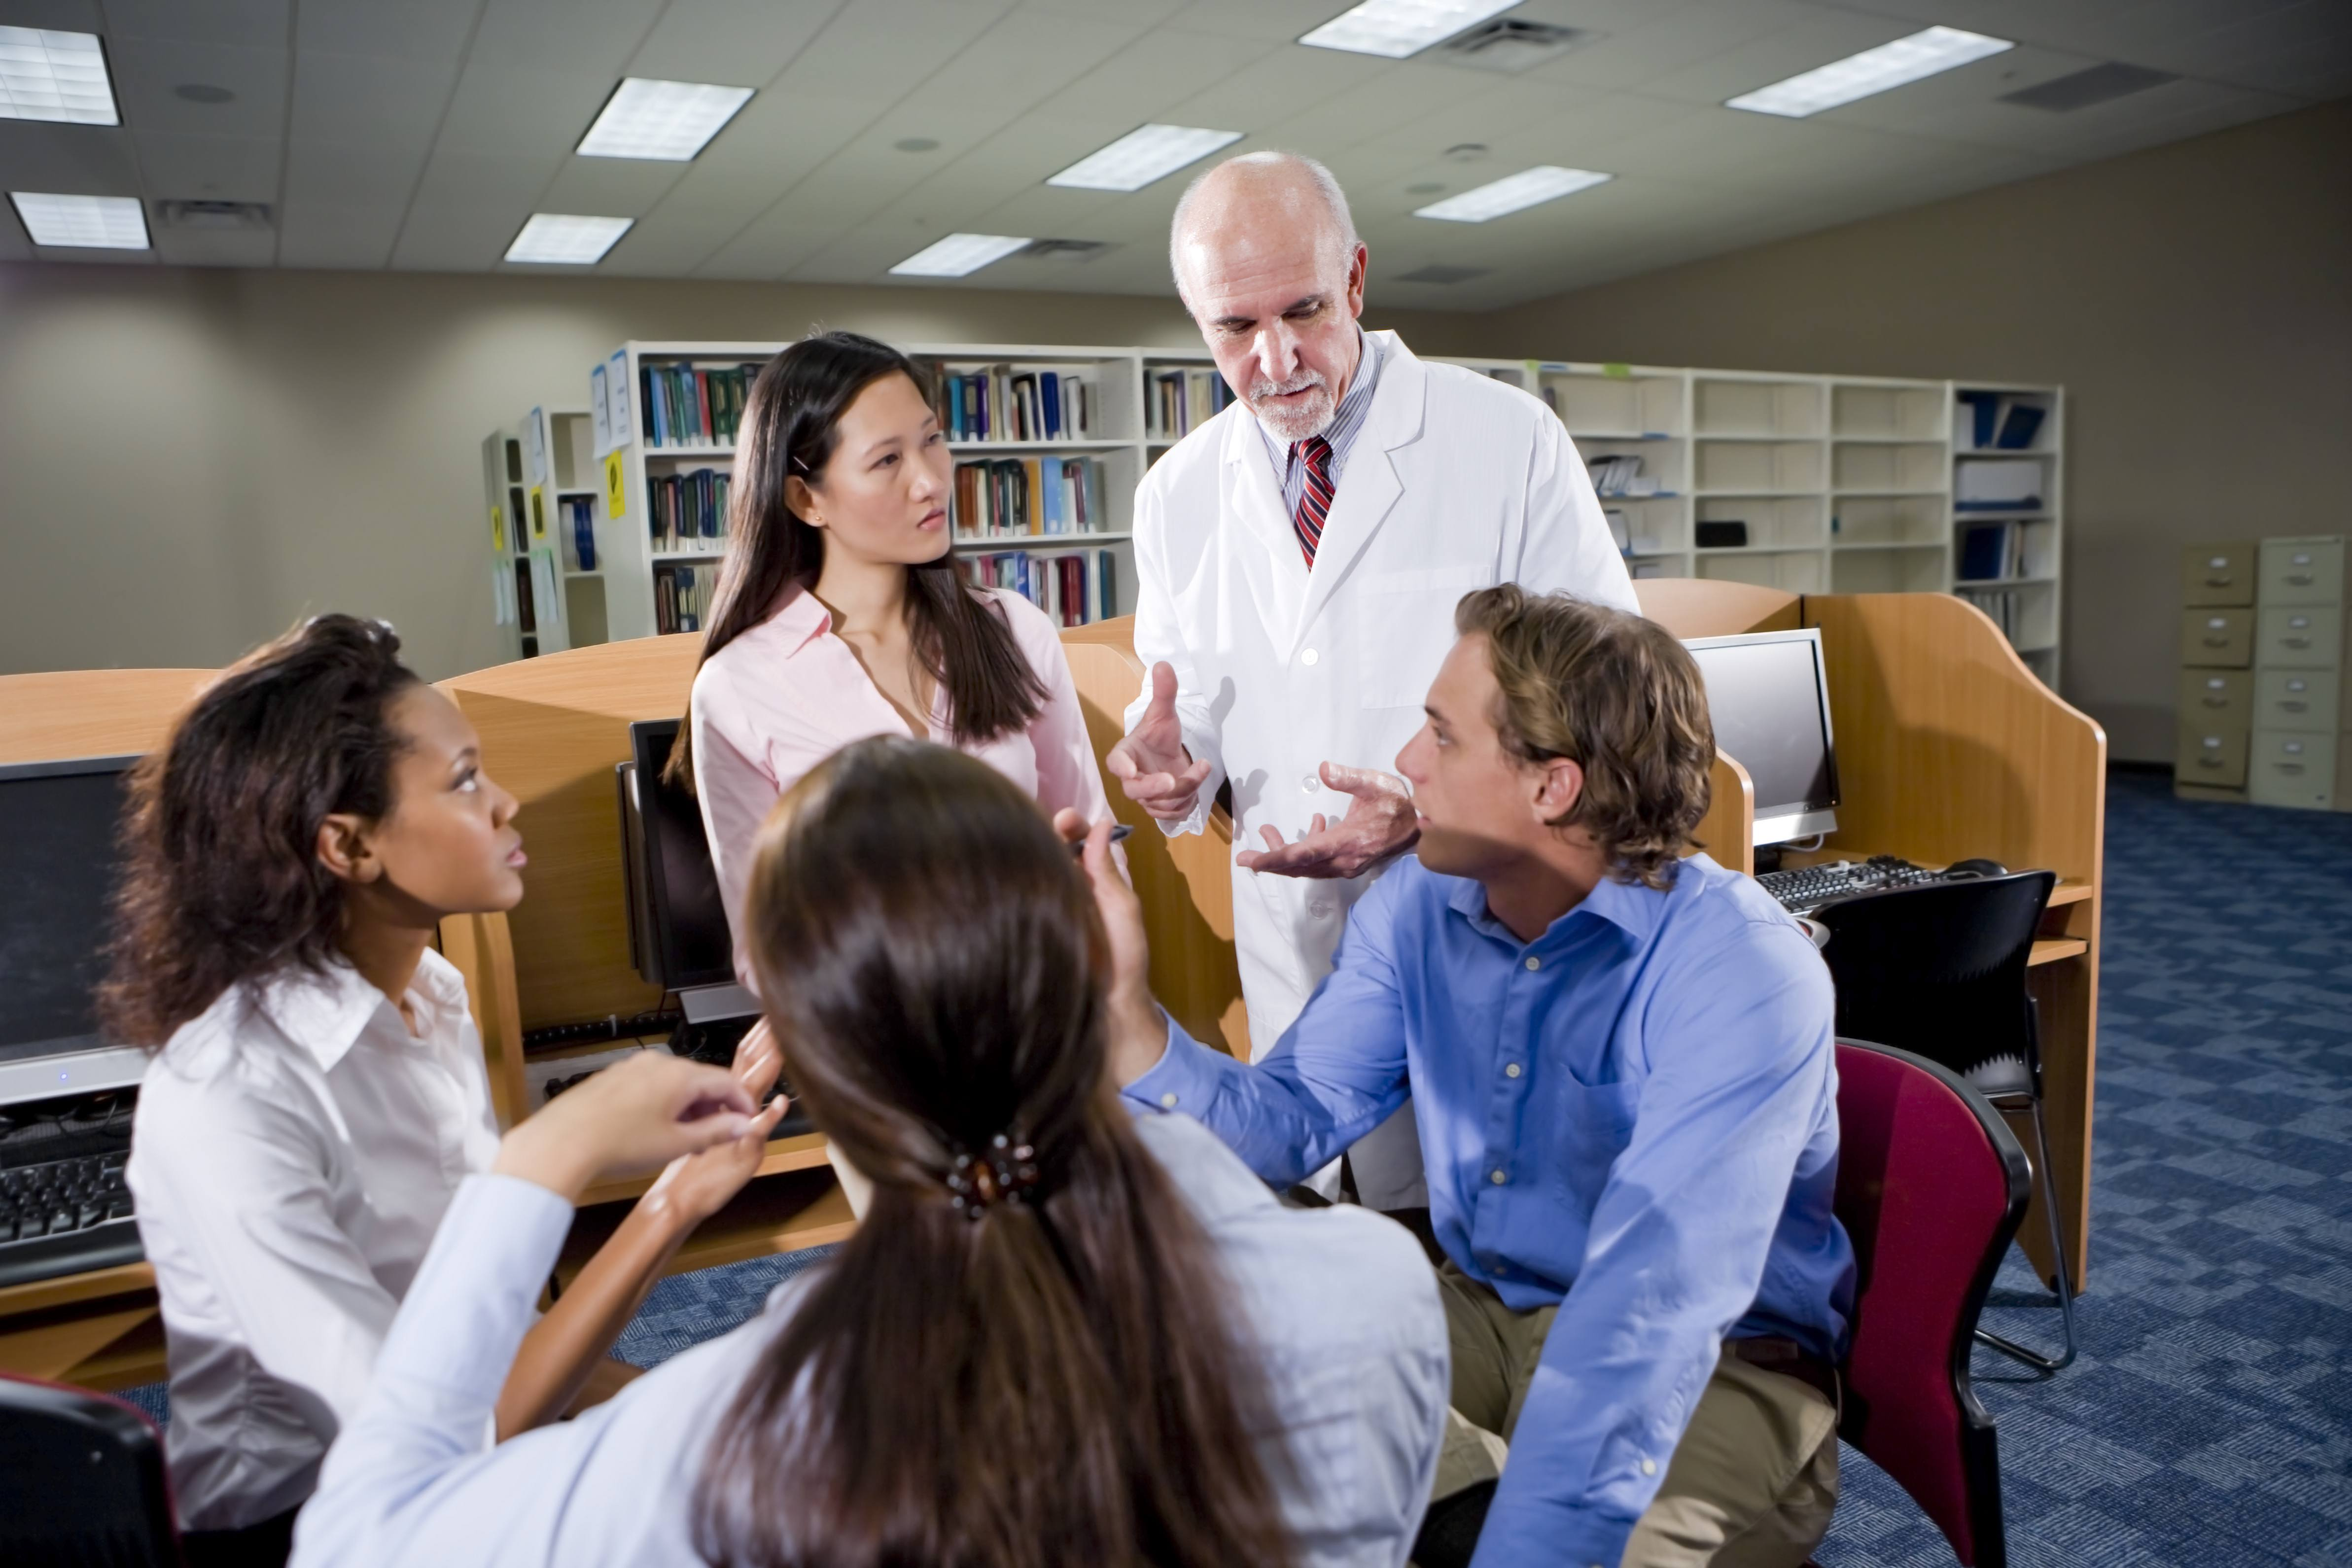 Multiracial students with professor conversing in library